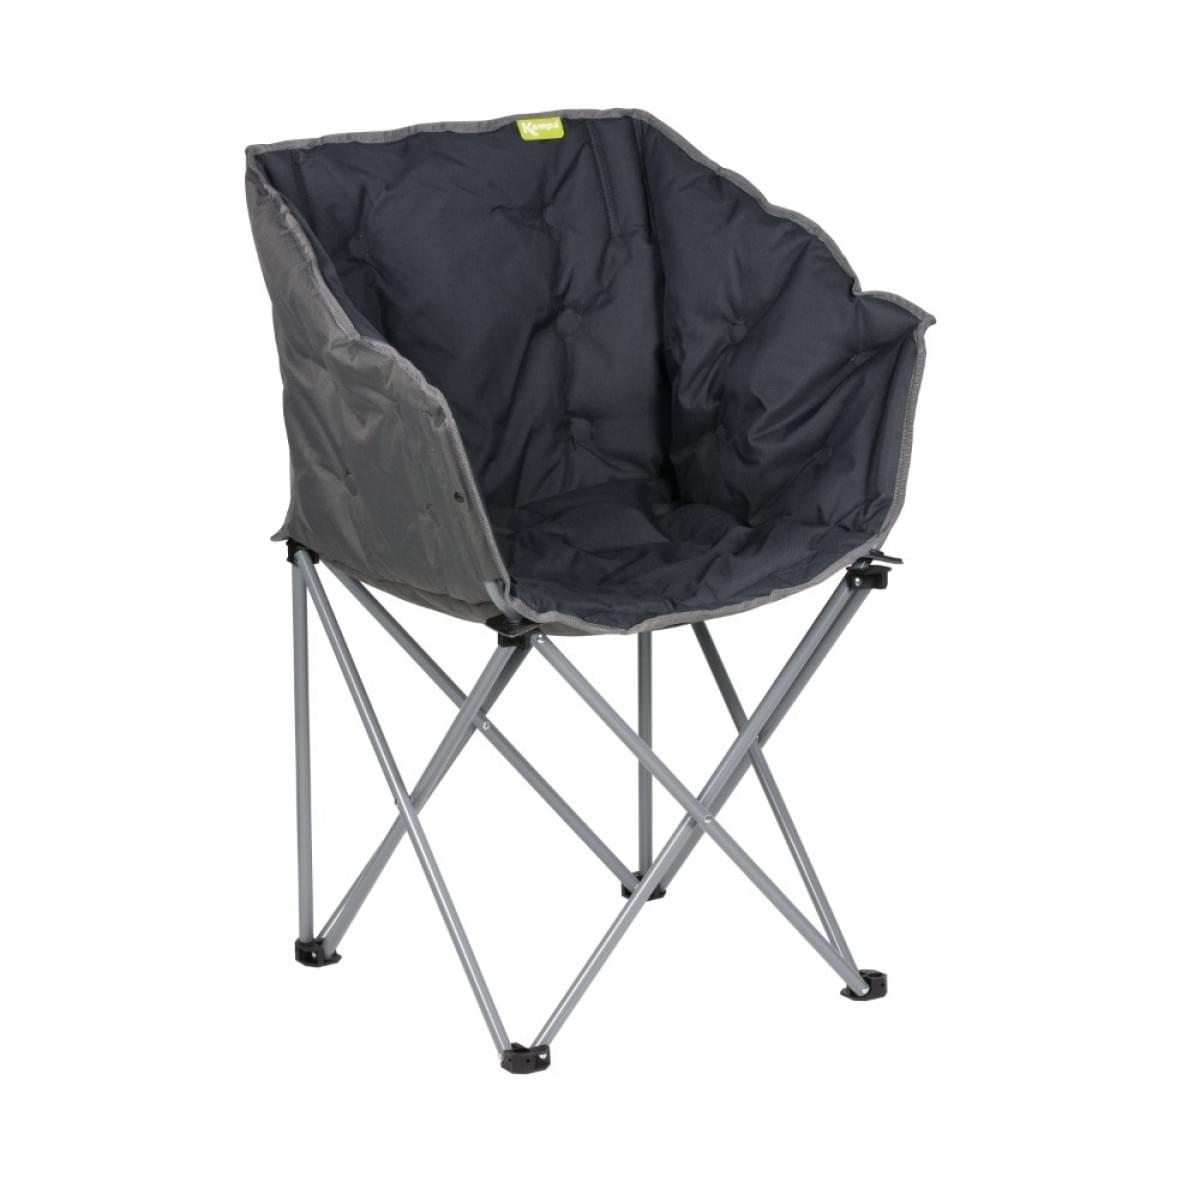 Kampa Kampa Dometic Tub Chair Campingstoel - Zwart